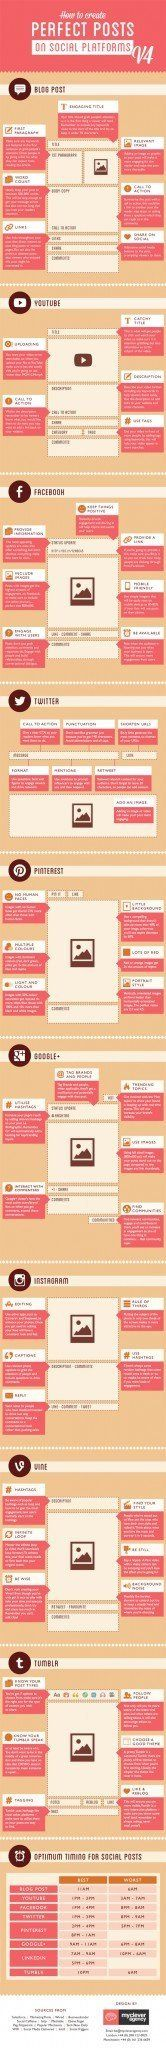 how-craft-perfect-social-post-infographic